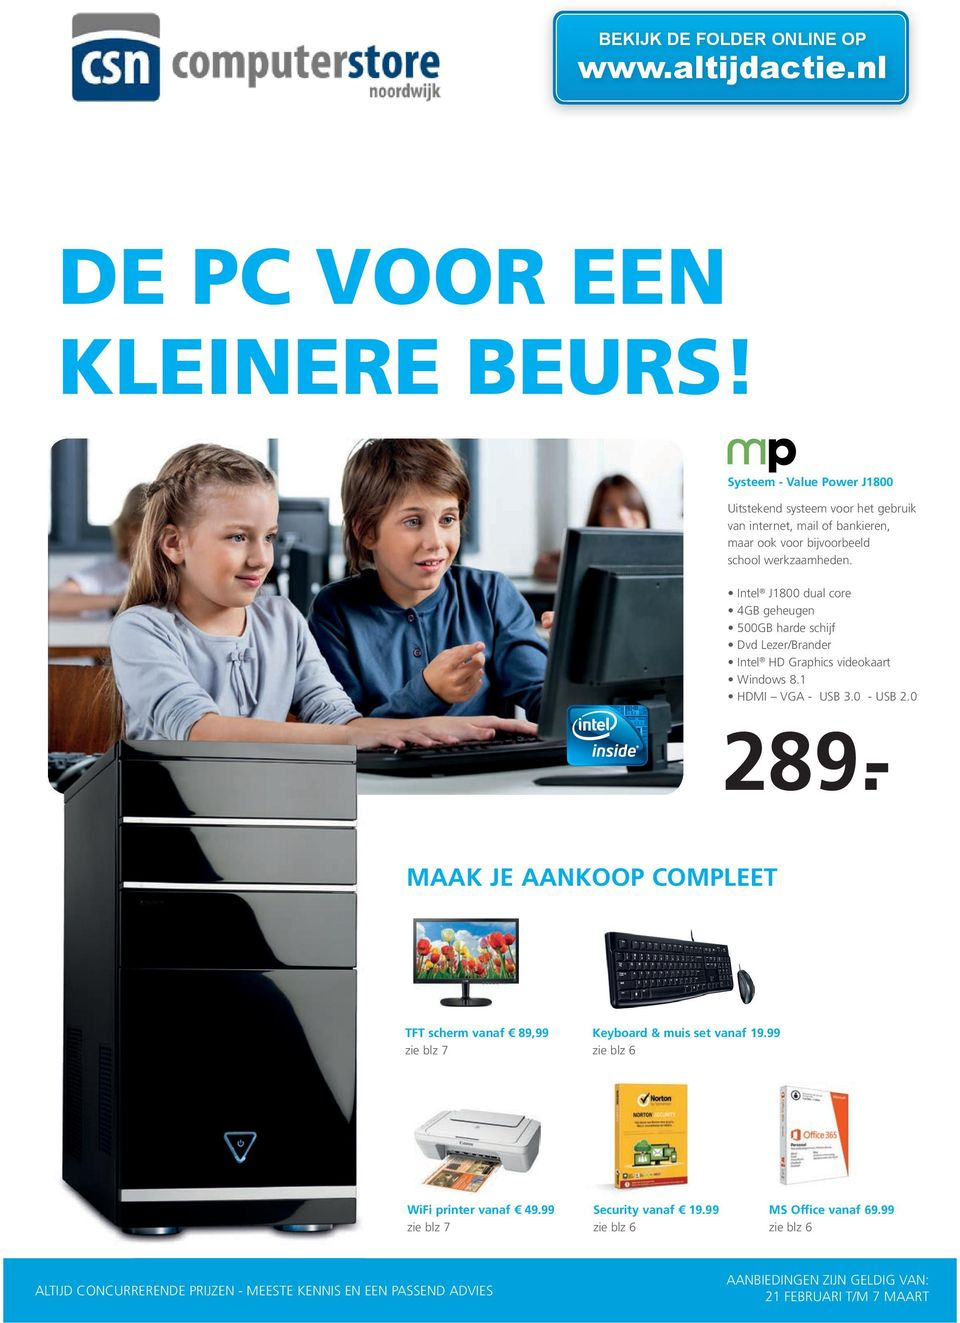 Intel J1800 dual core Dvd Lezer/Brander Intel HD Graphics videokaart HDMI VGA - USB 3.0 - USB 2.0 289.